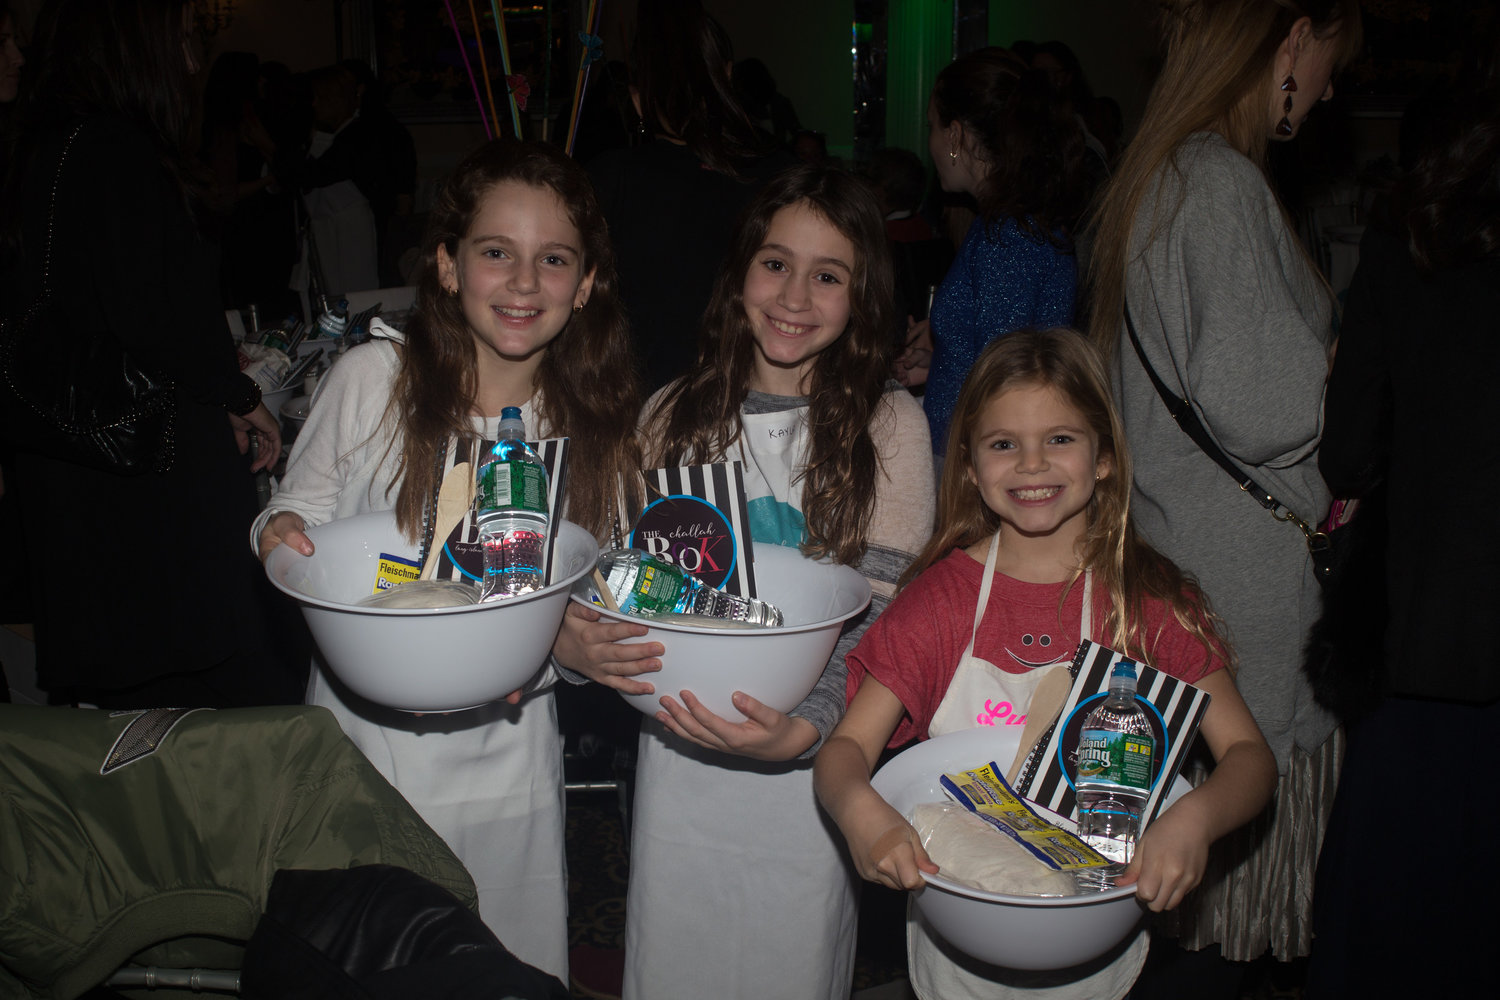 Girls and women will come from across the metropolitan area to take part in the Great Challah Bake at the Sands in Atlantic Beach on Oct. 24. Above, Kayla, with sisters Julia, left, and Lucy attended the 2016 event.